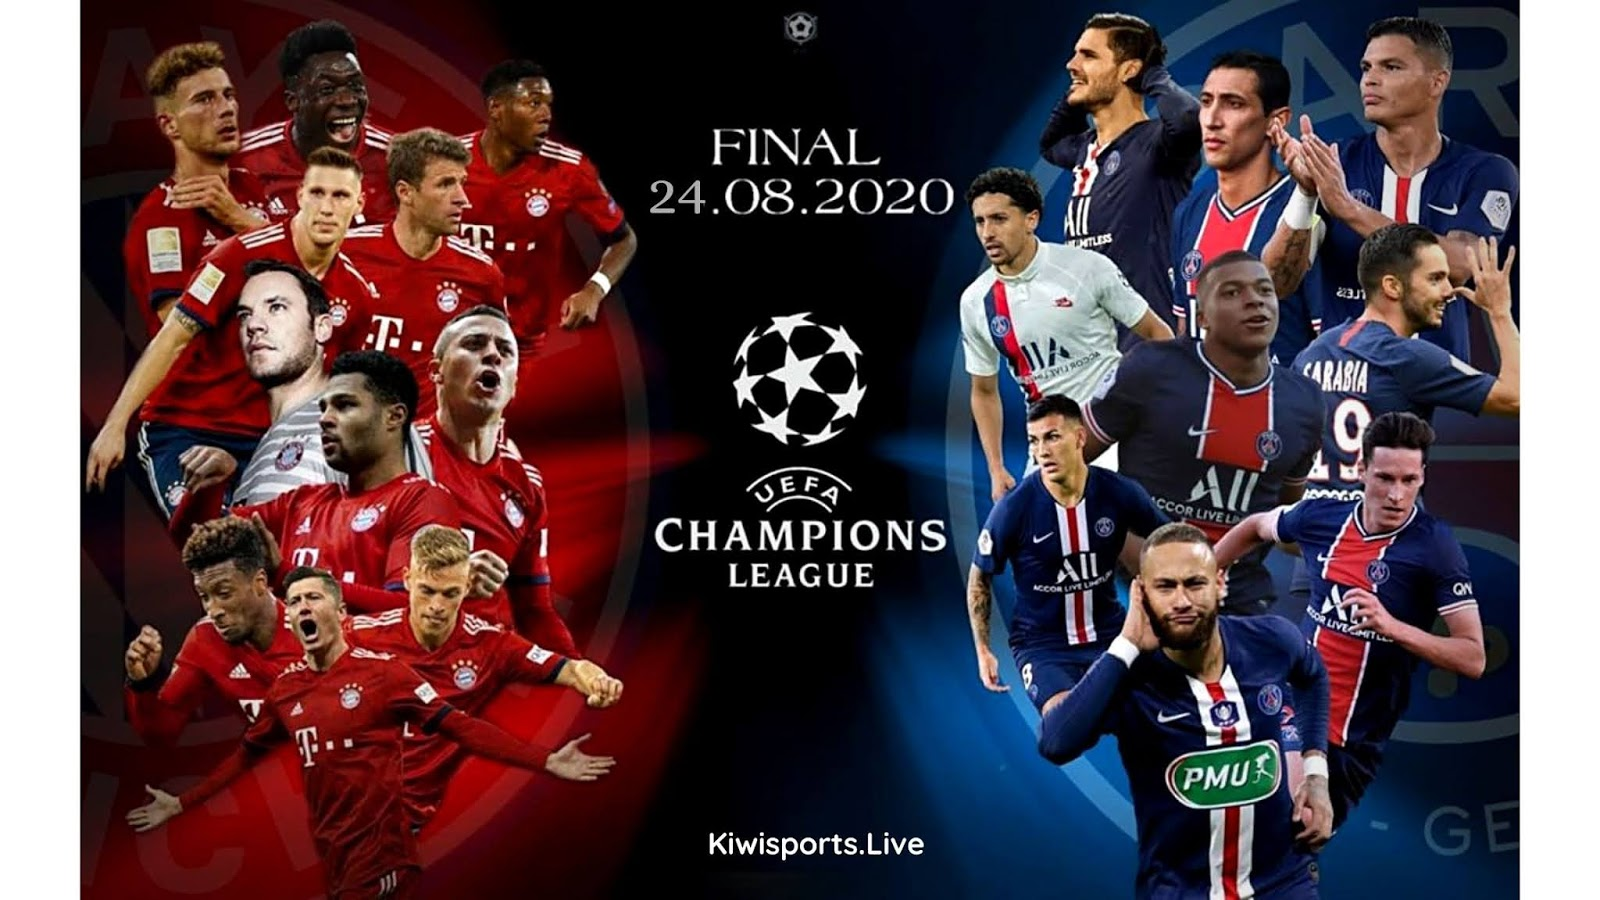 PSG x Bayern Munich: Match Preview, Schedule & Live Stream | UCL Final